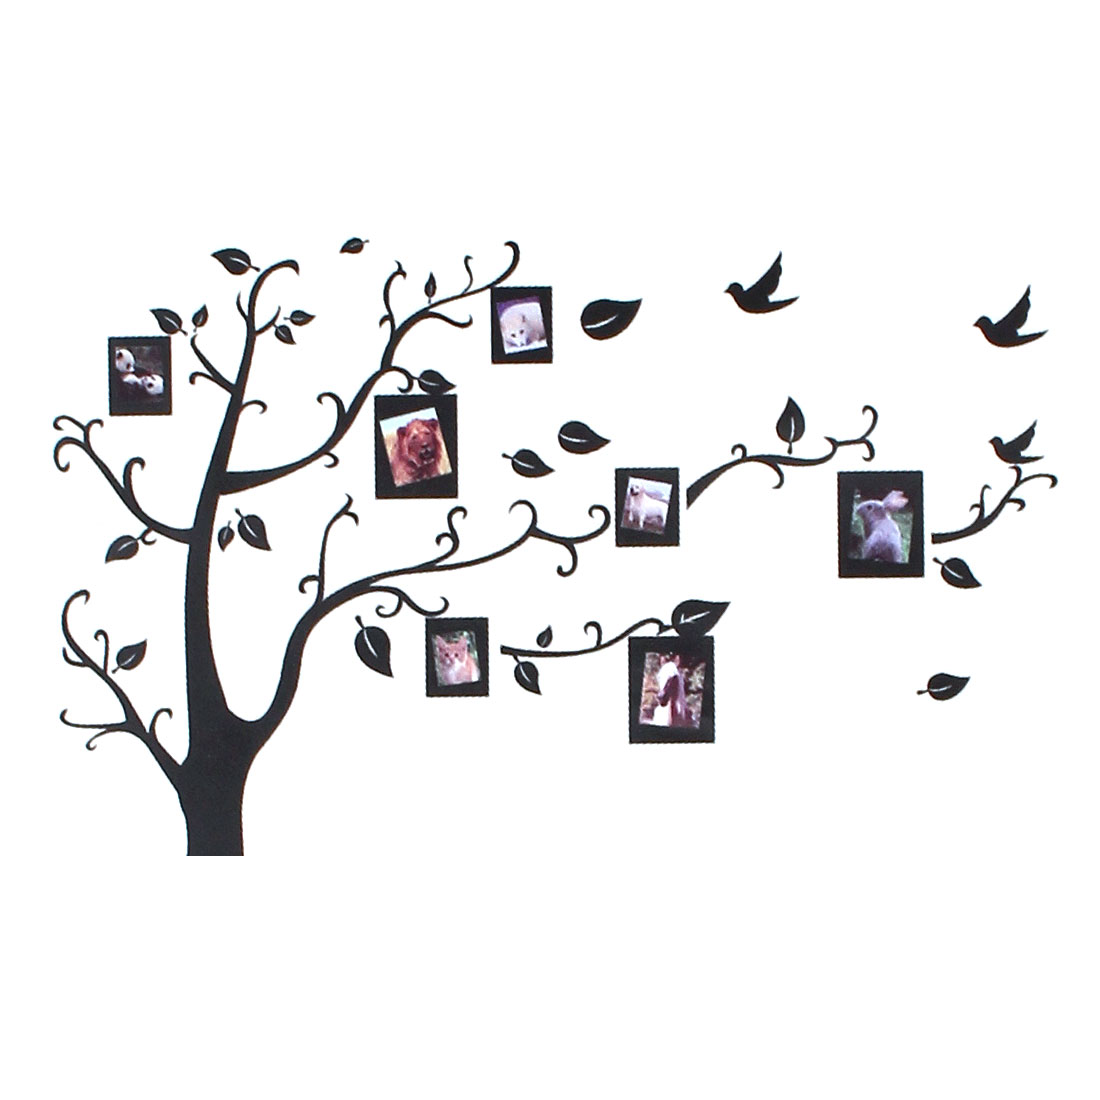 Home Living Room Television Wall Photo Album Tree Pattern Decorative DIY Sticker